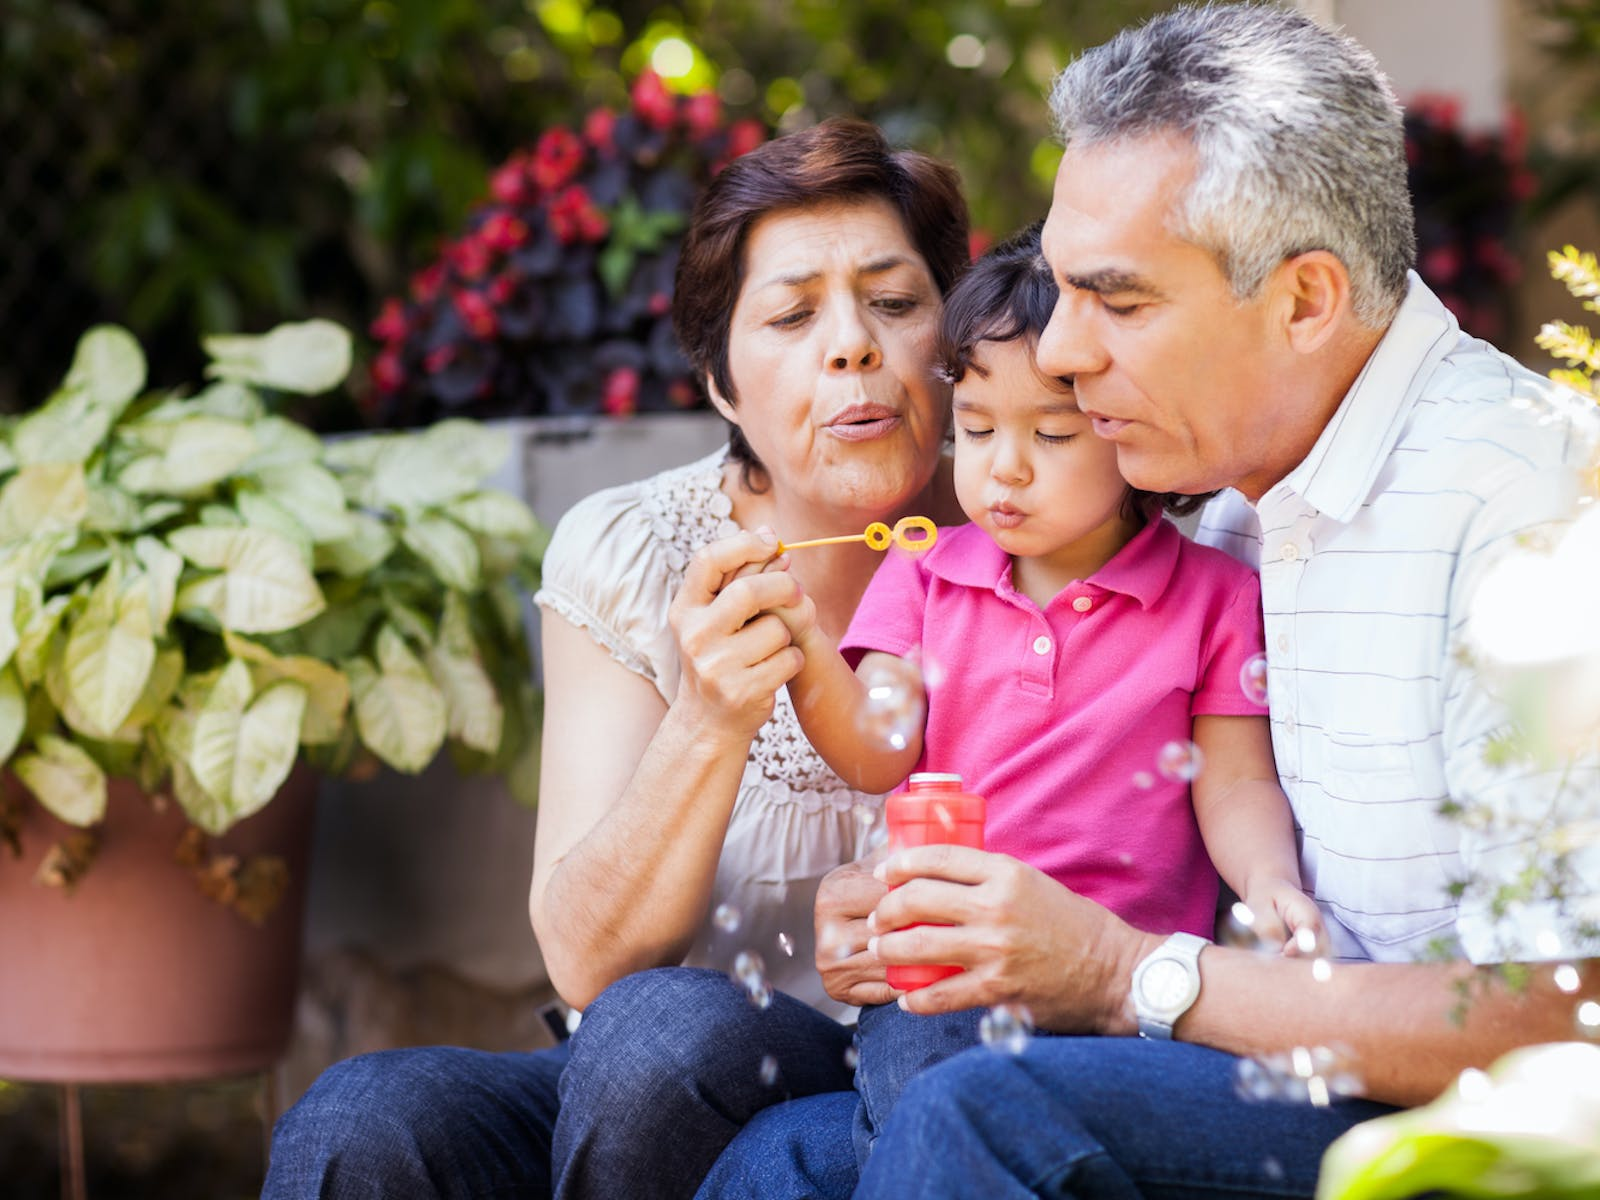 Couple blowing bubbles with young child